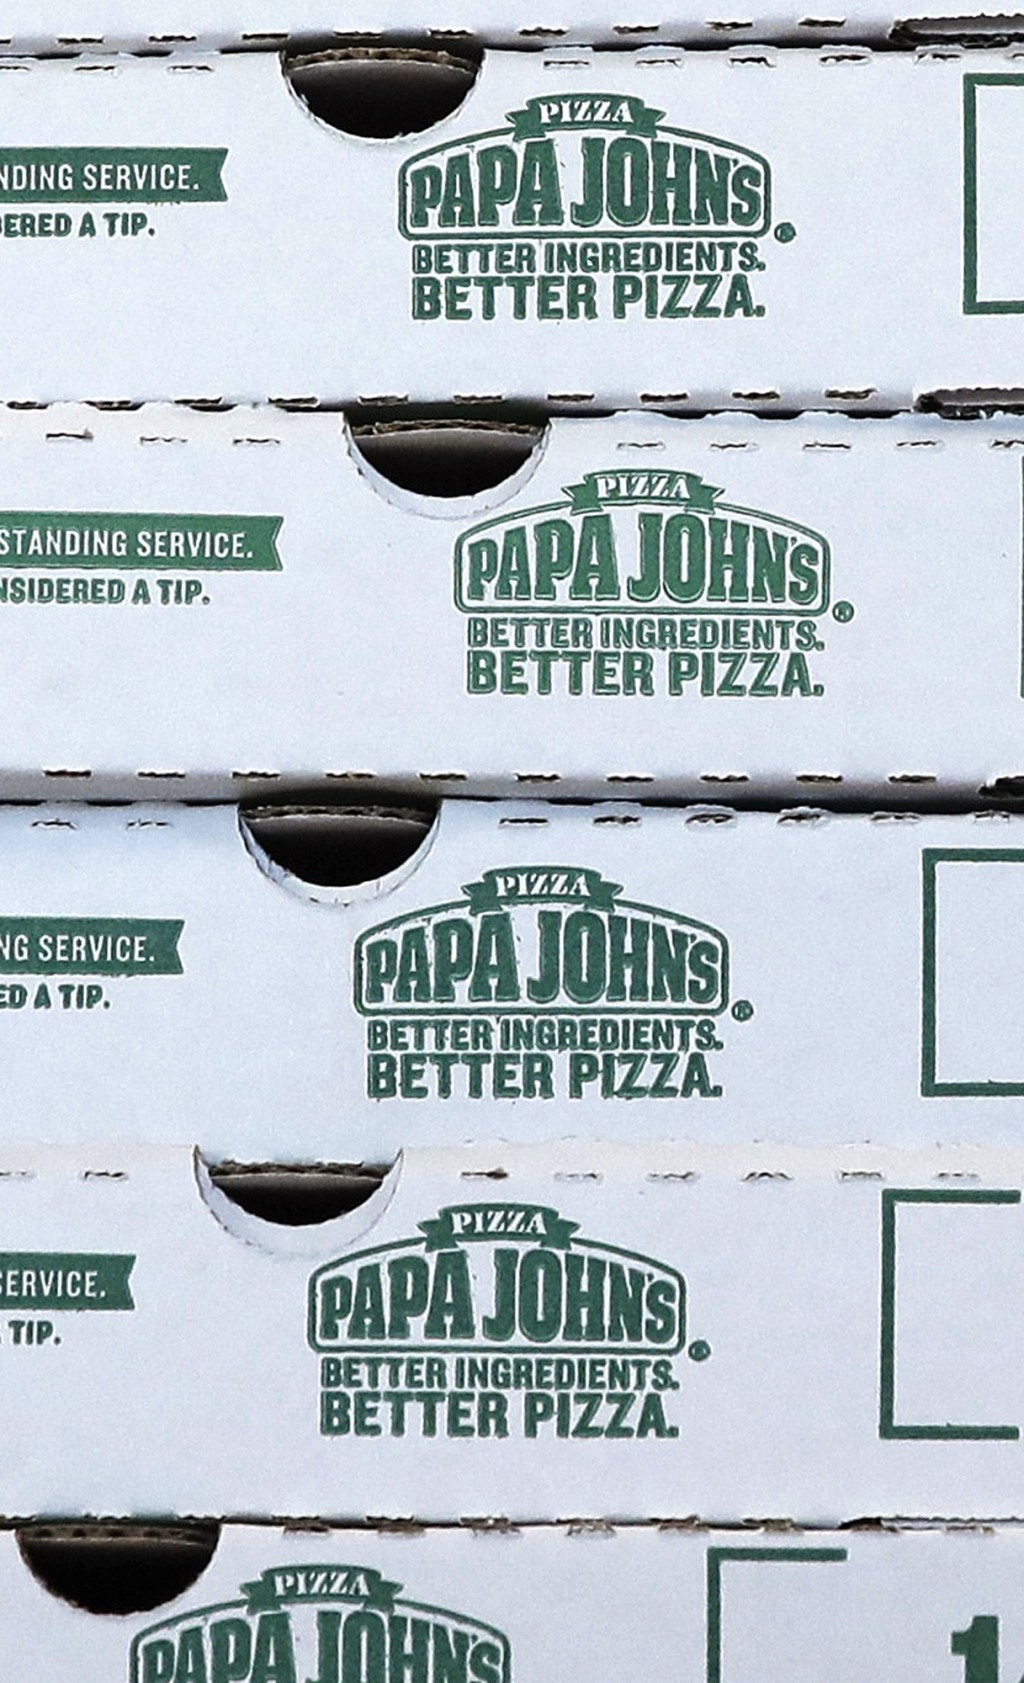 FILE- This Dec. 21, 2017, file photo shows pizza boxes stacked at a Papa John's pizza store in Quincy, Mass. Papa John's plans to pull founder John Sc